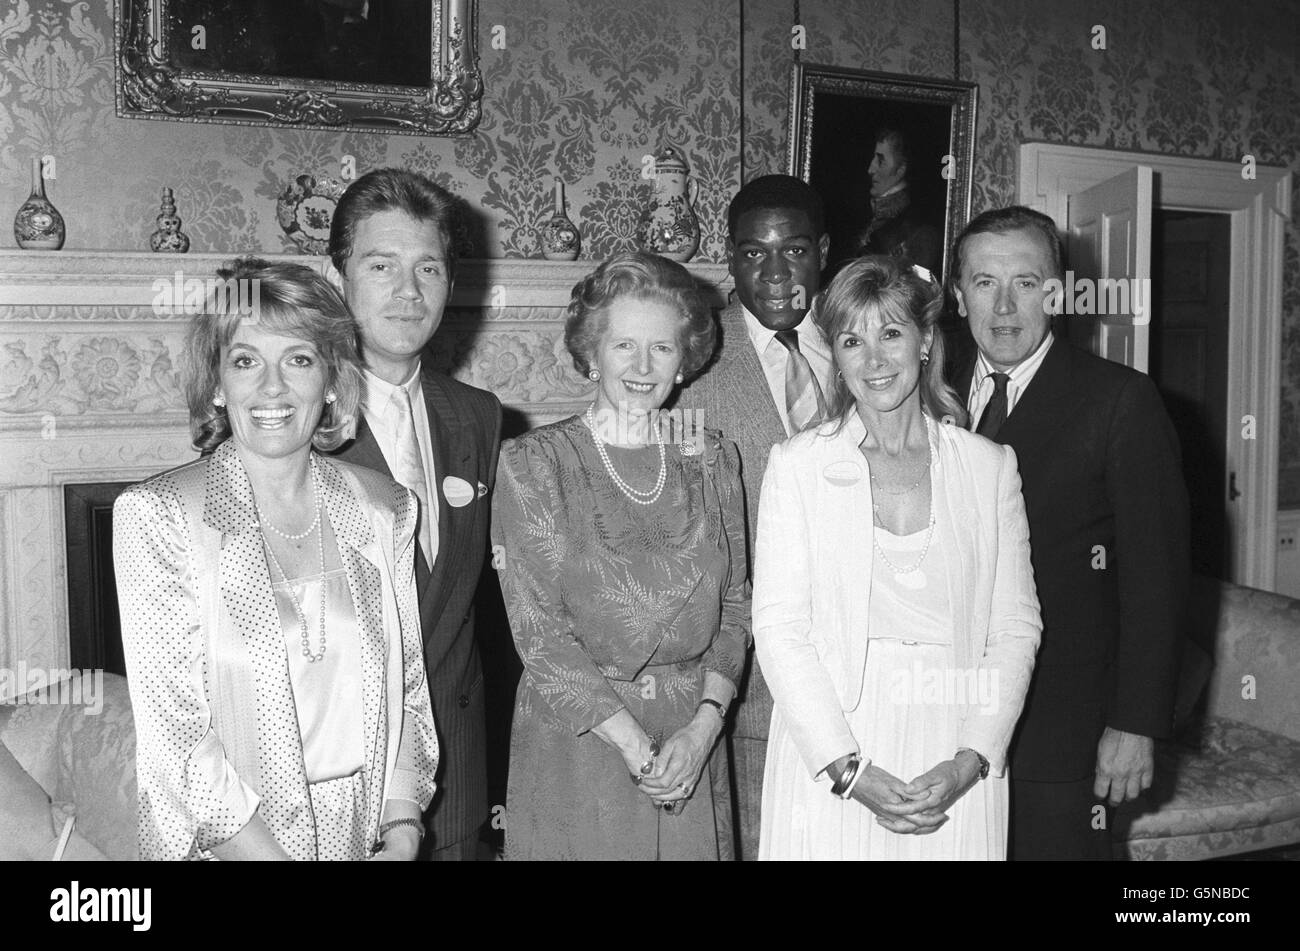 News - Prime Minister Margaret Thatcher at a reception thanking supporters of Childline - Downing Street - London Stock Photo